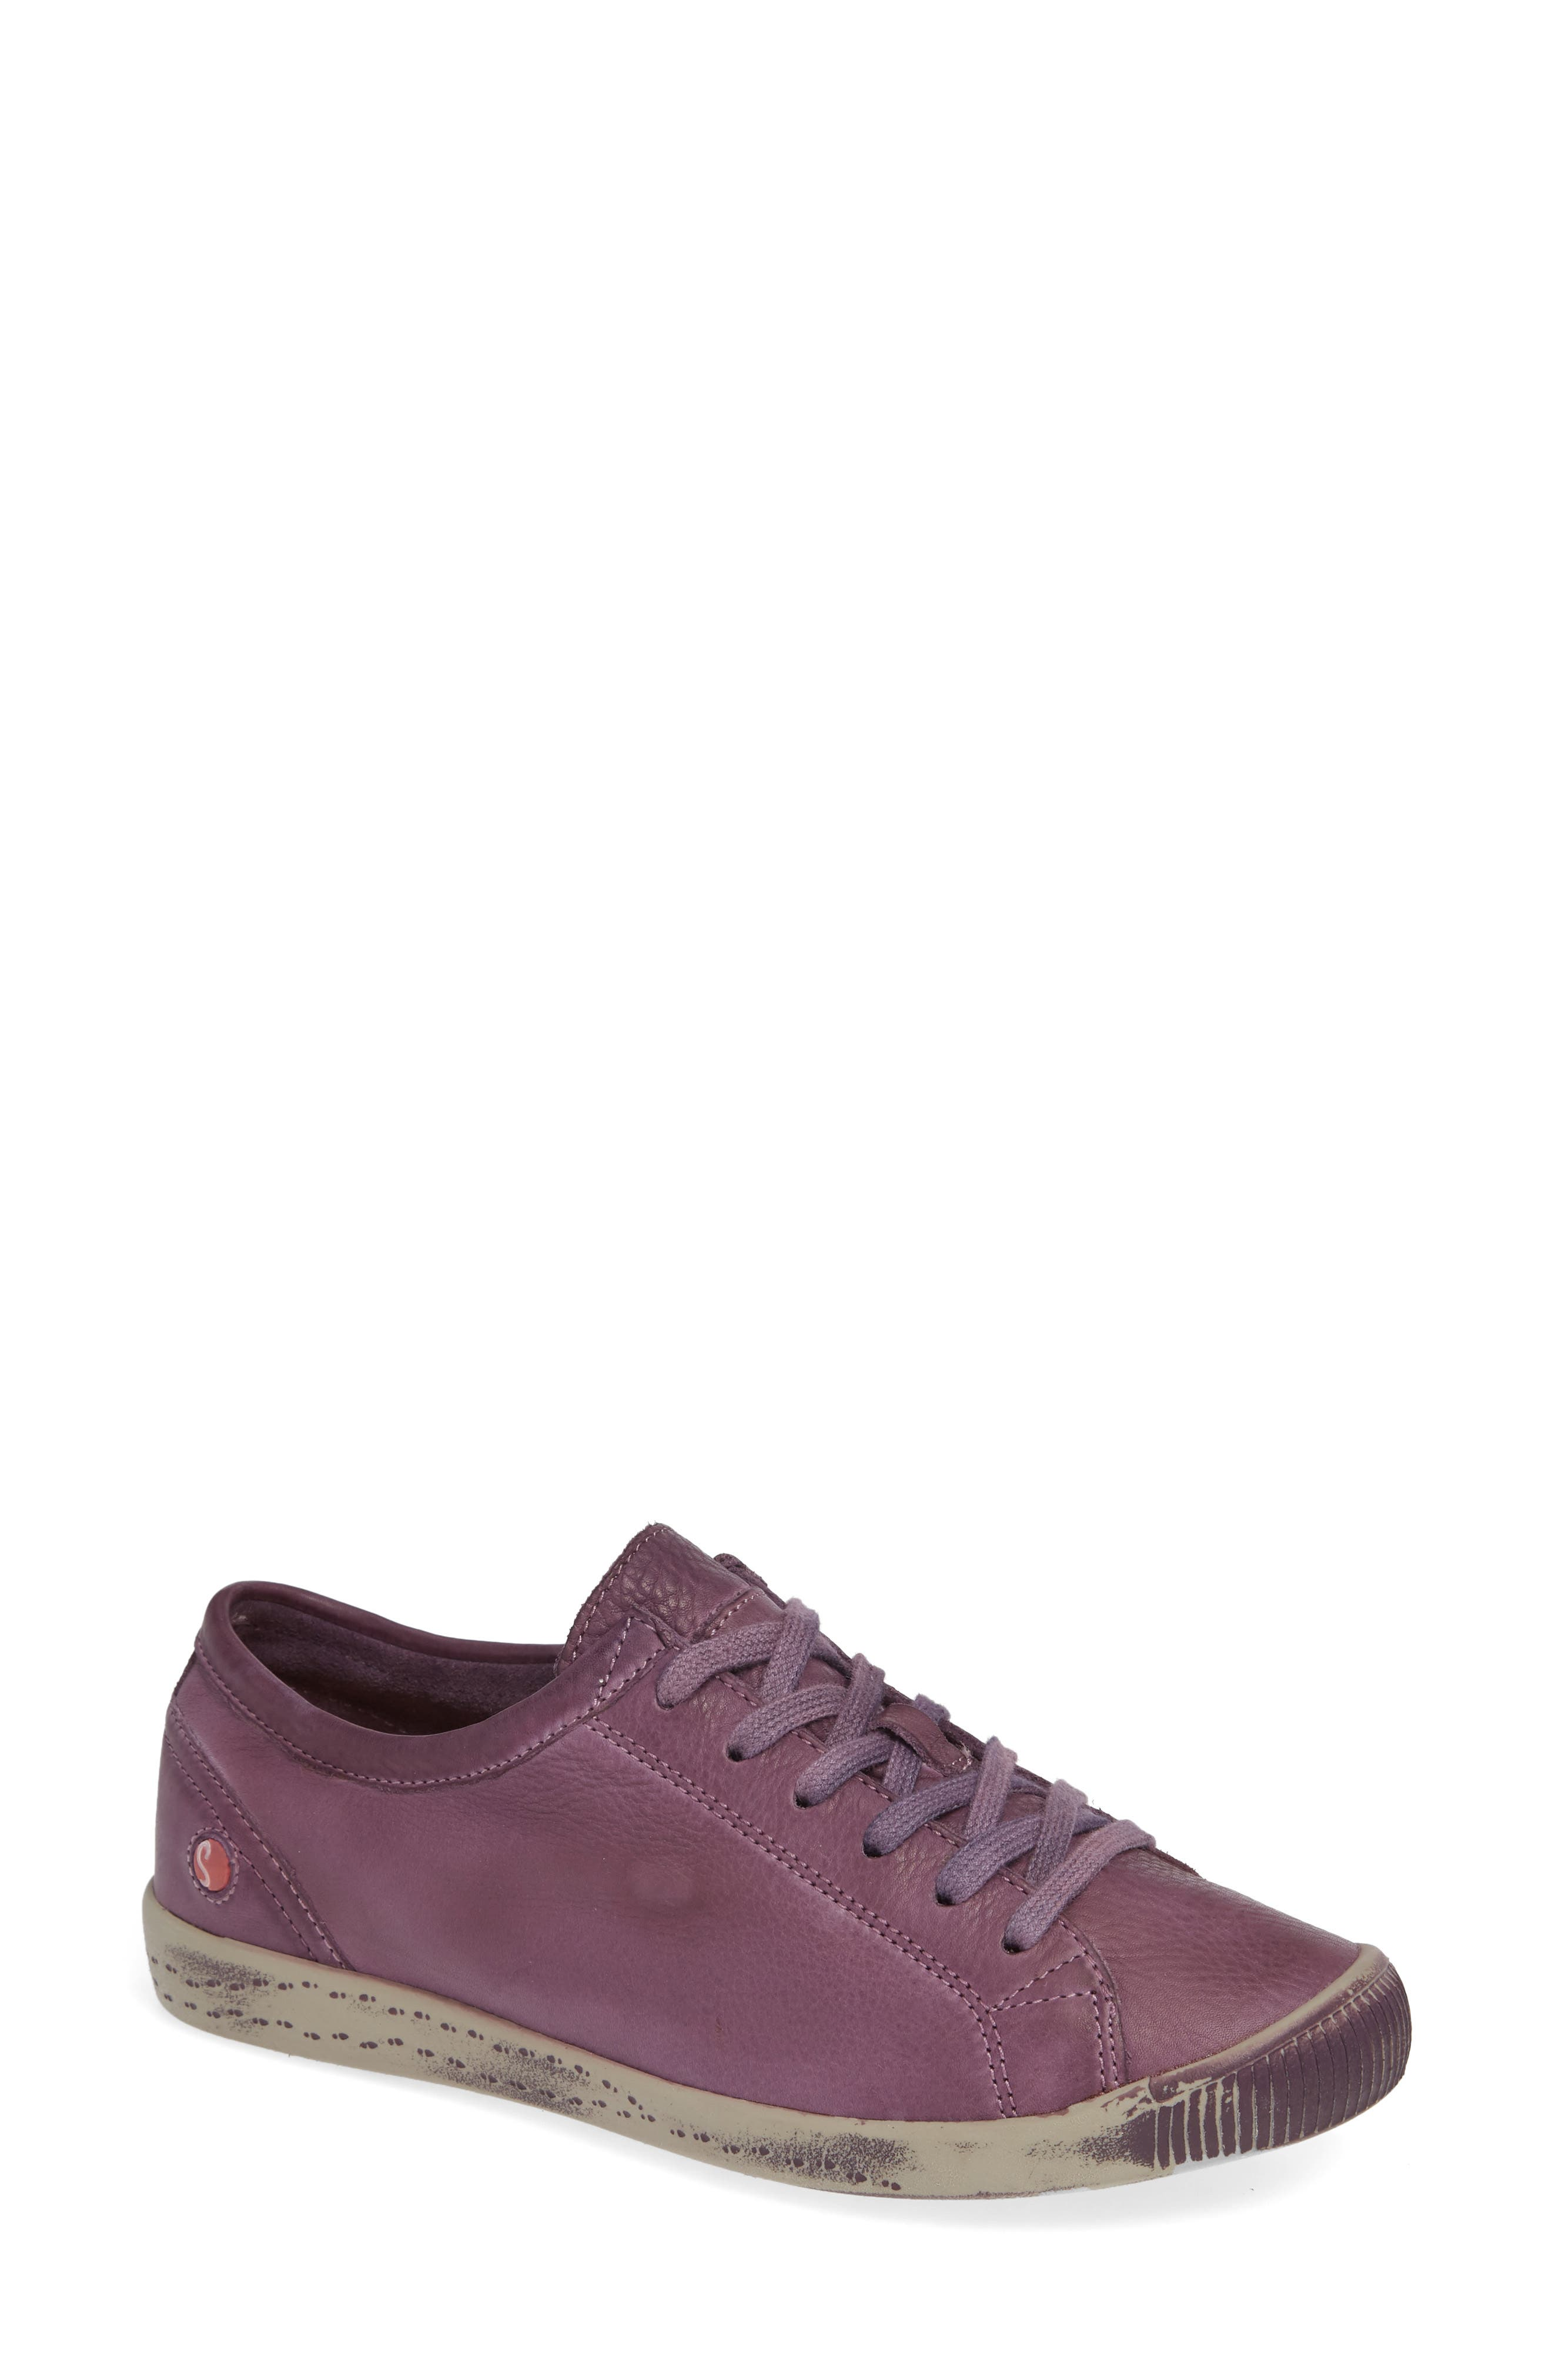 Softinos By Fly London Isla Distressed Sneaker - Purple